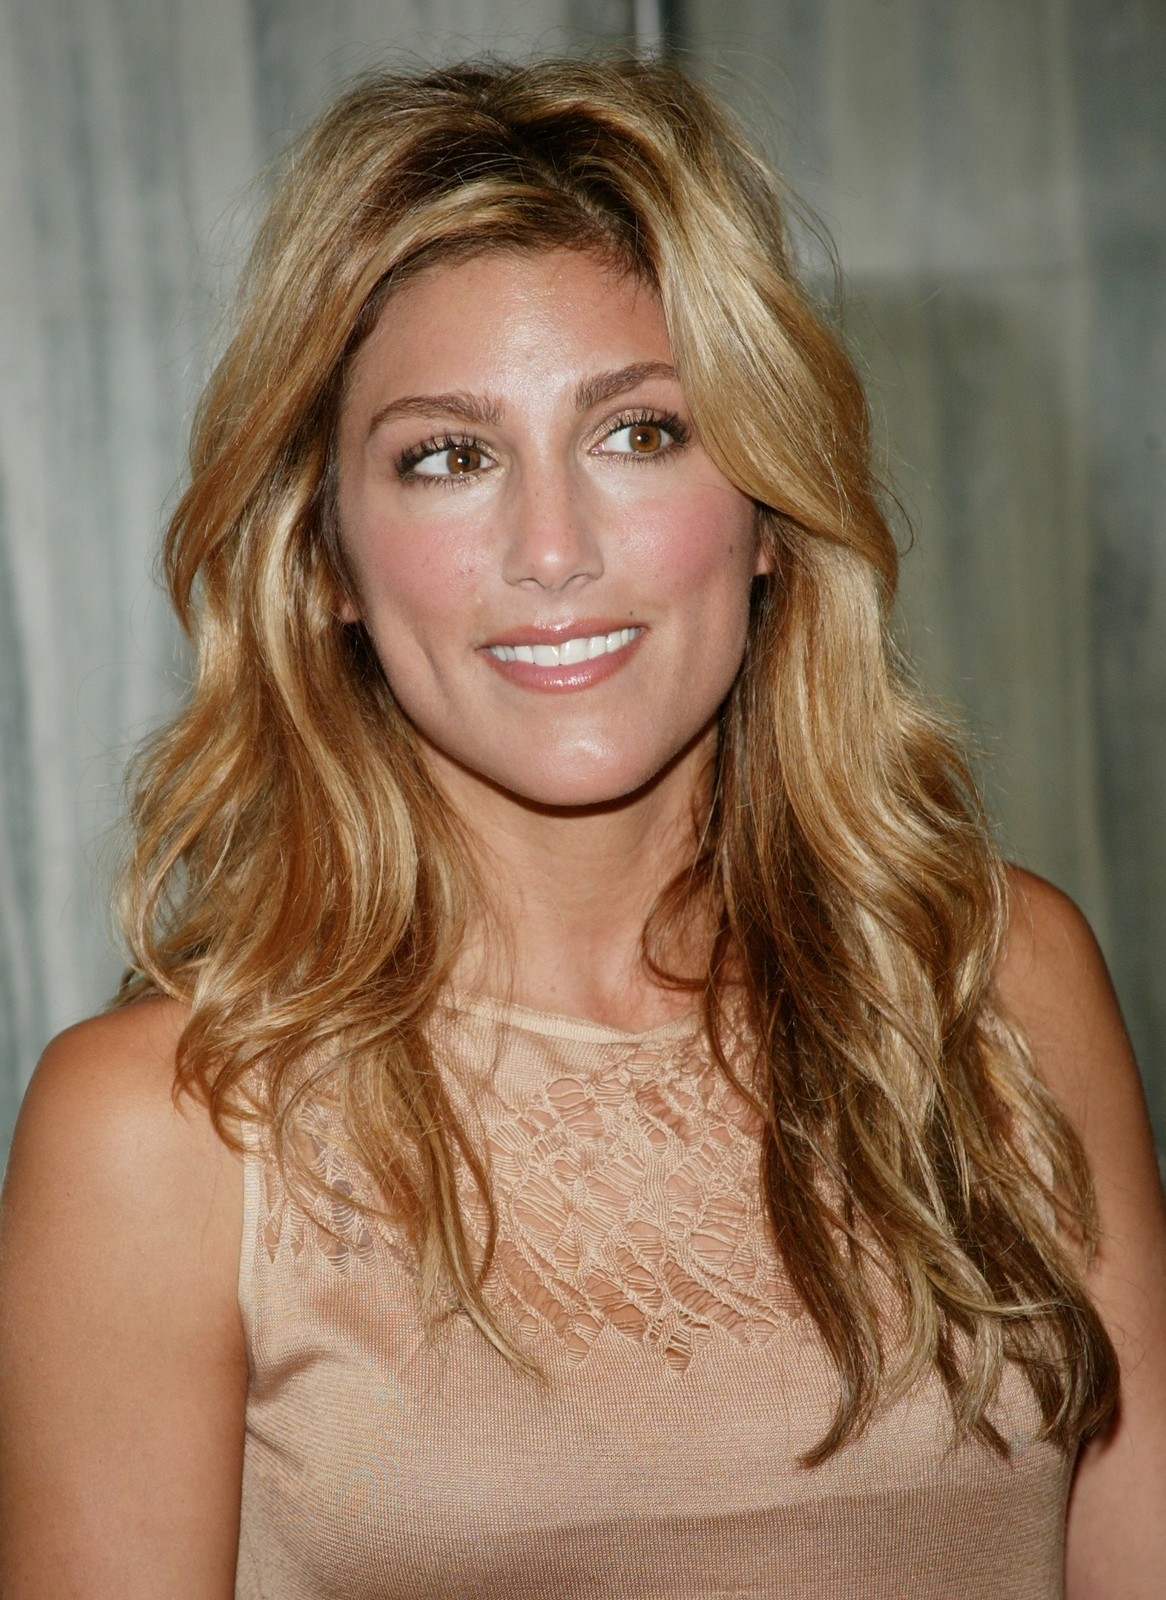 Opinion. Your jennifer esposito hot happens. Let's